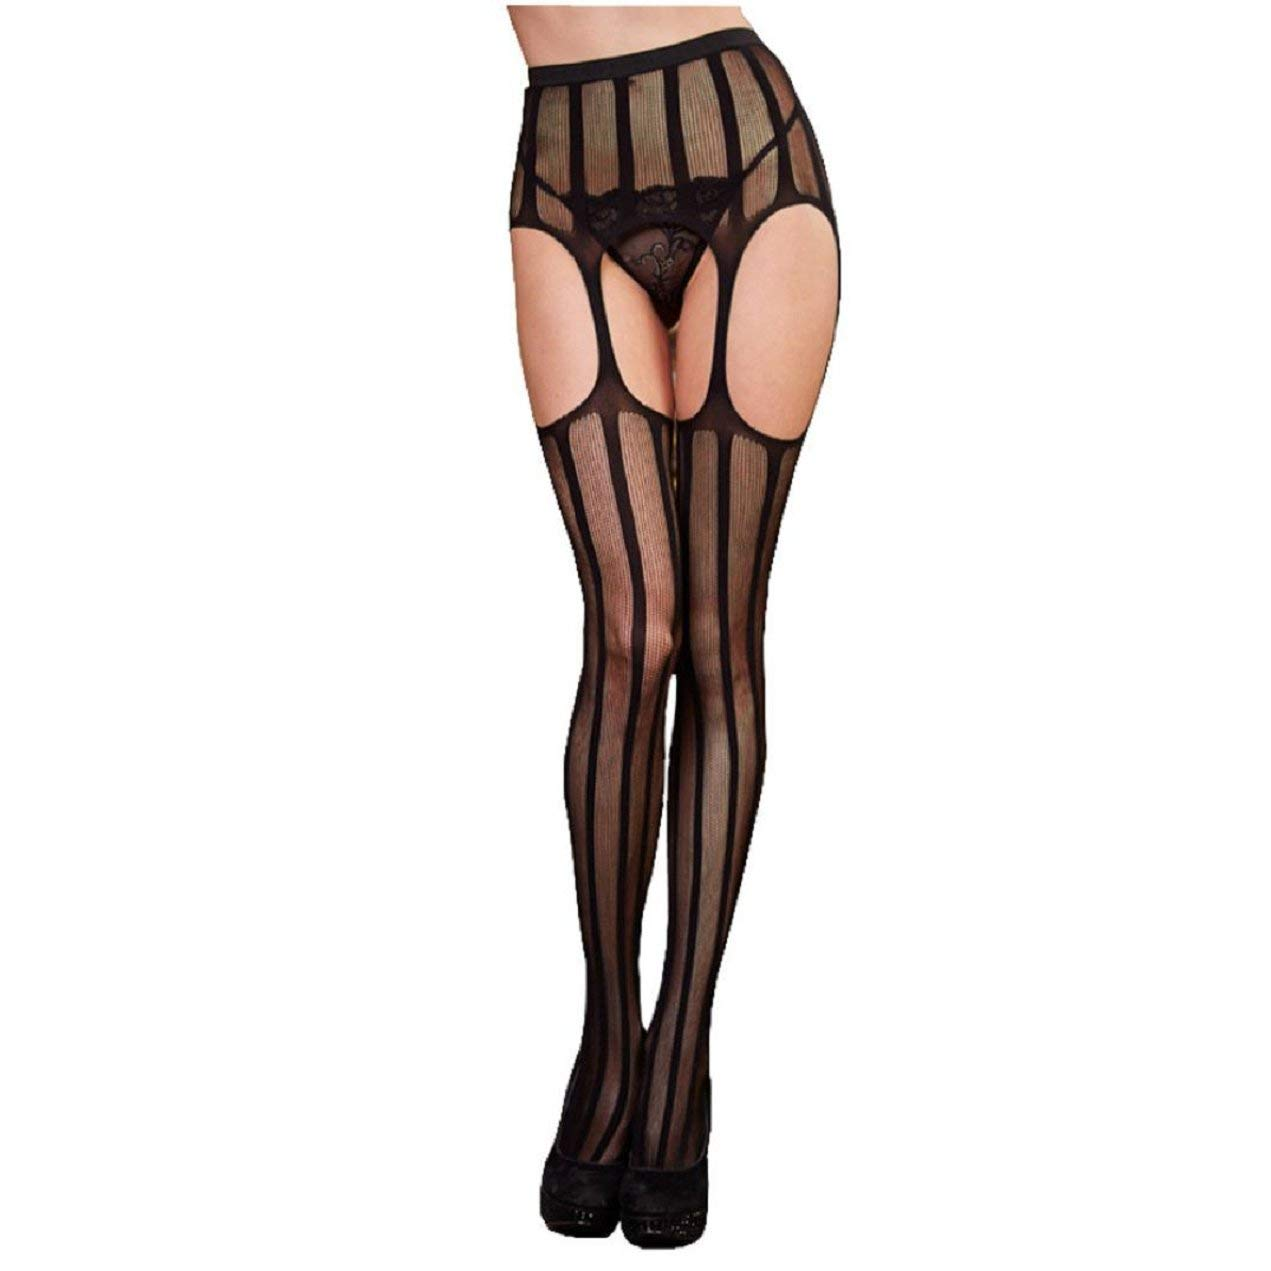 ca1ae56e977f12 Get Quotations · TONSEE Sexy Women Lingerie Net Lace Top Garter Belt Thigh  Stocking Pantyhose